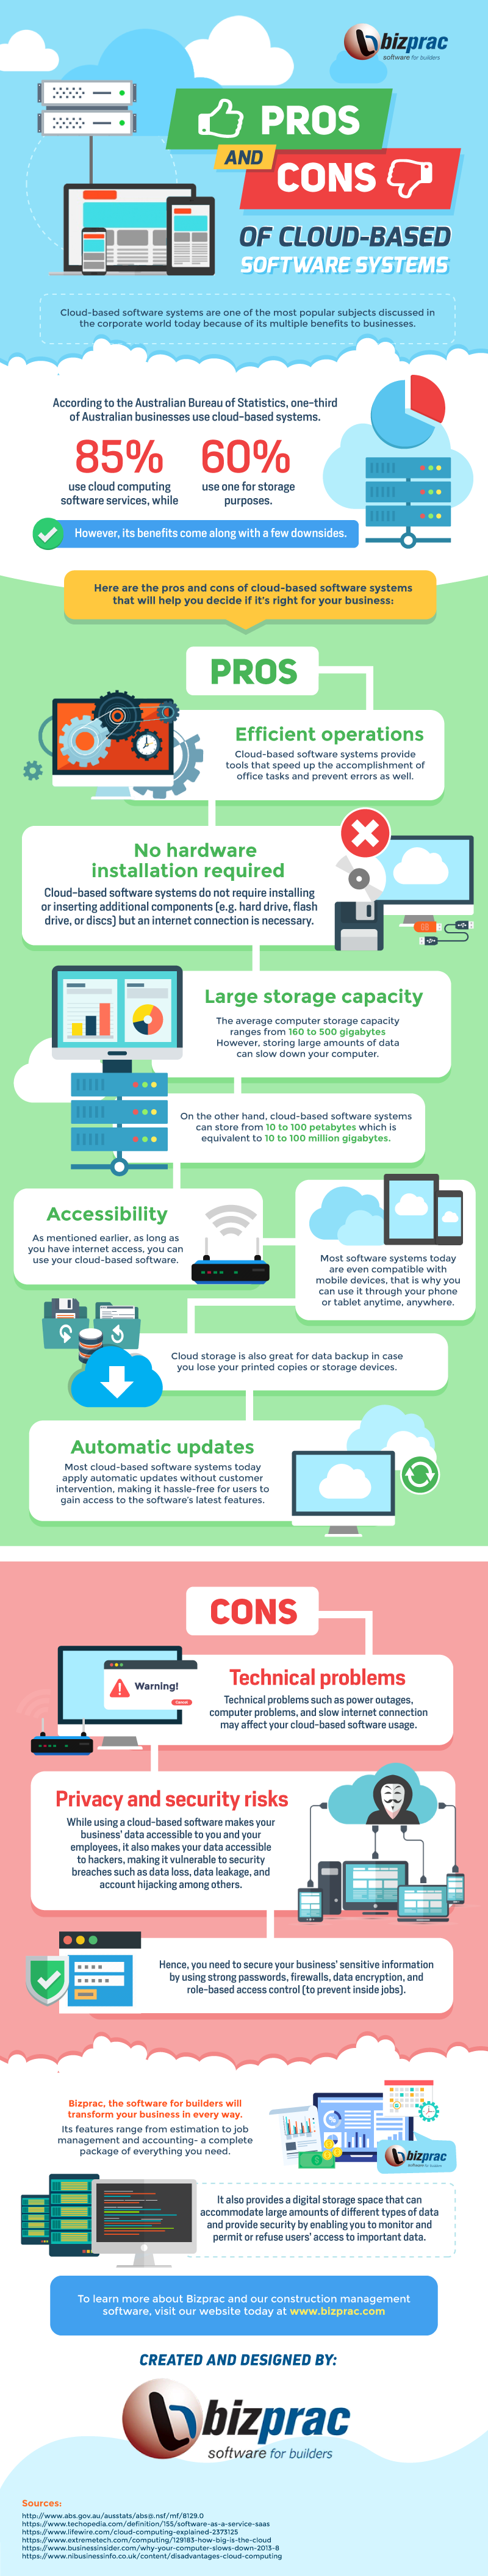 Pros and Cons of Cloud-Based Software Systems